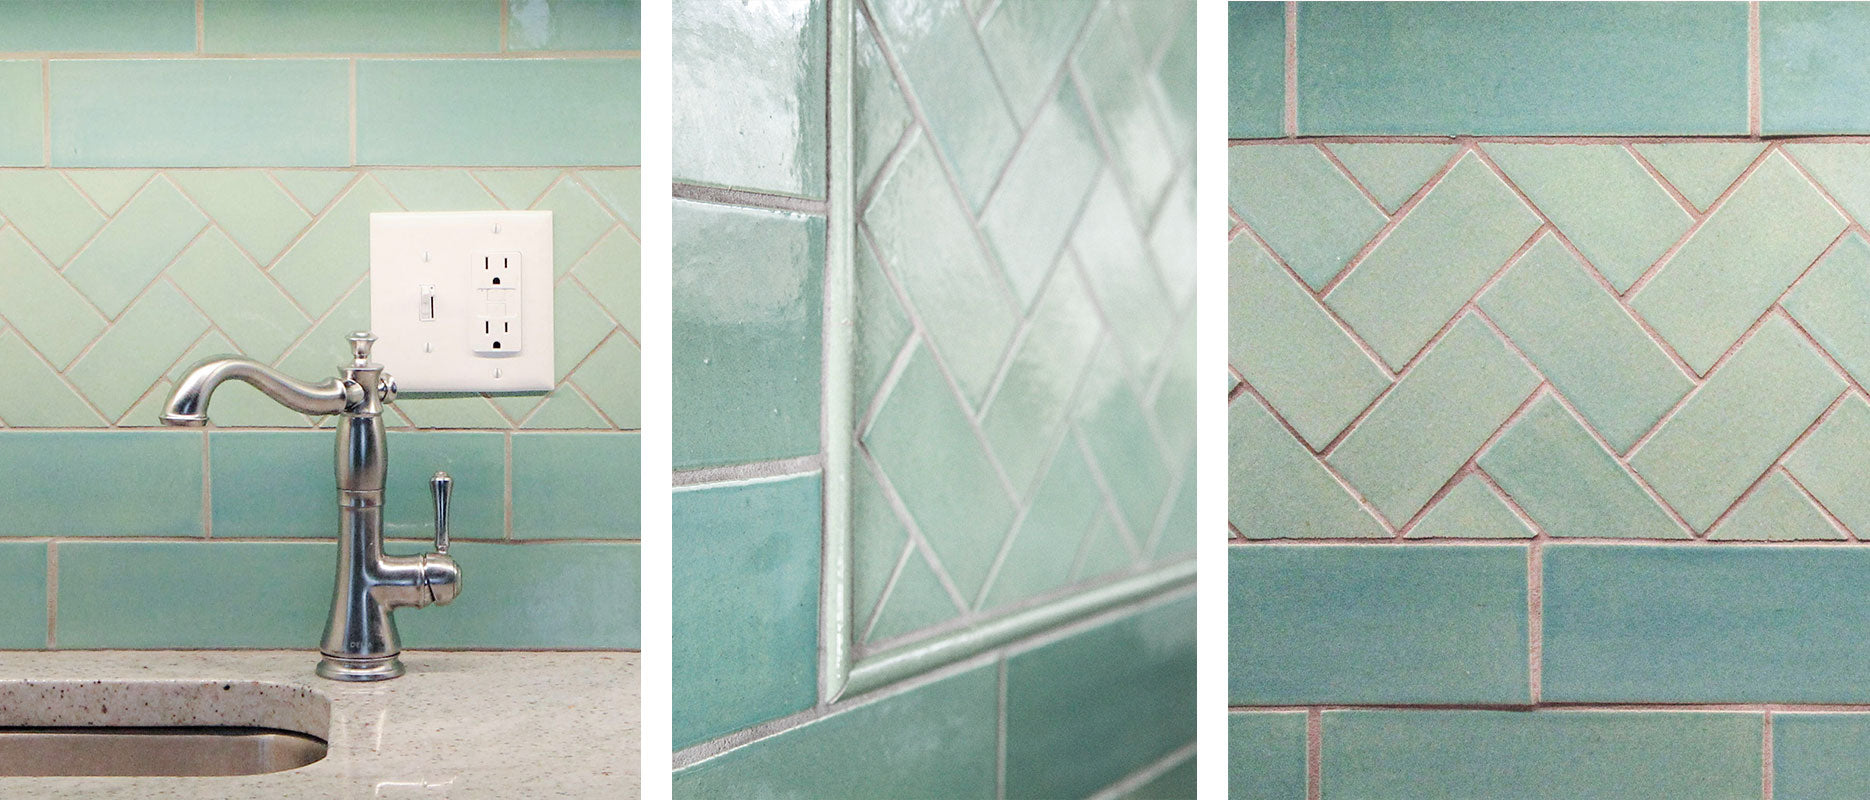 Teal Kitchen Backsplash Tile Detail